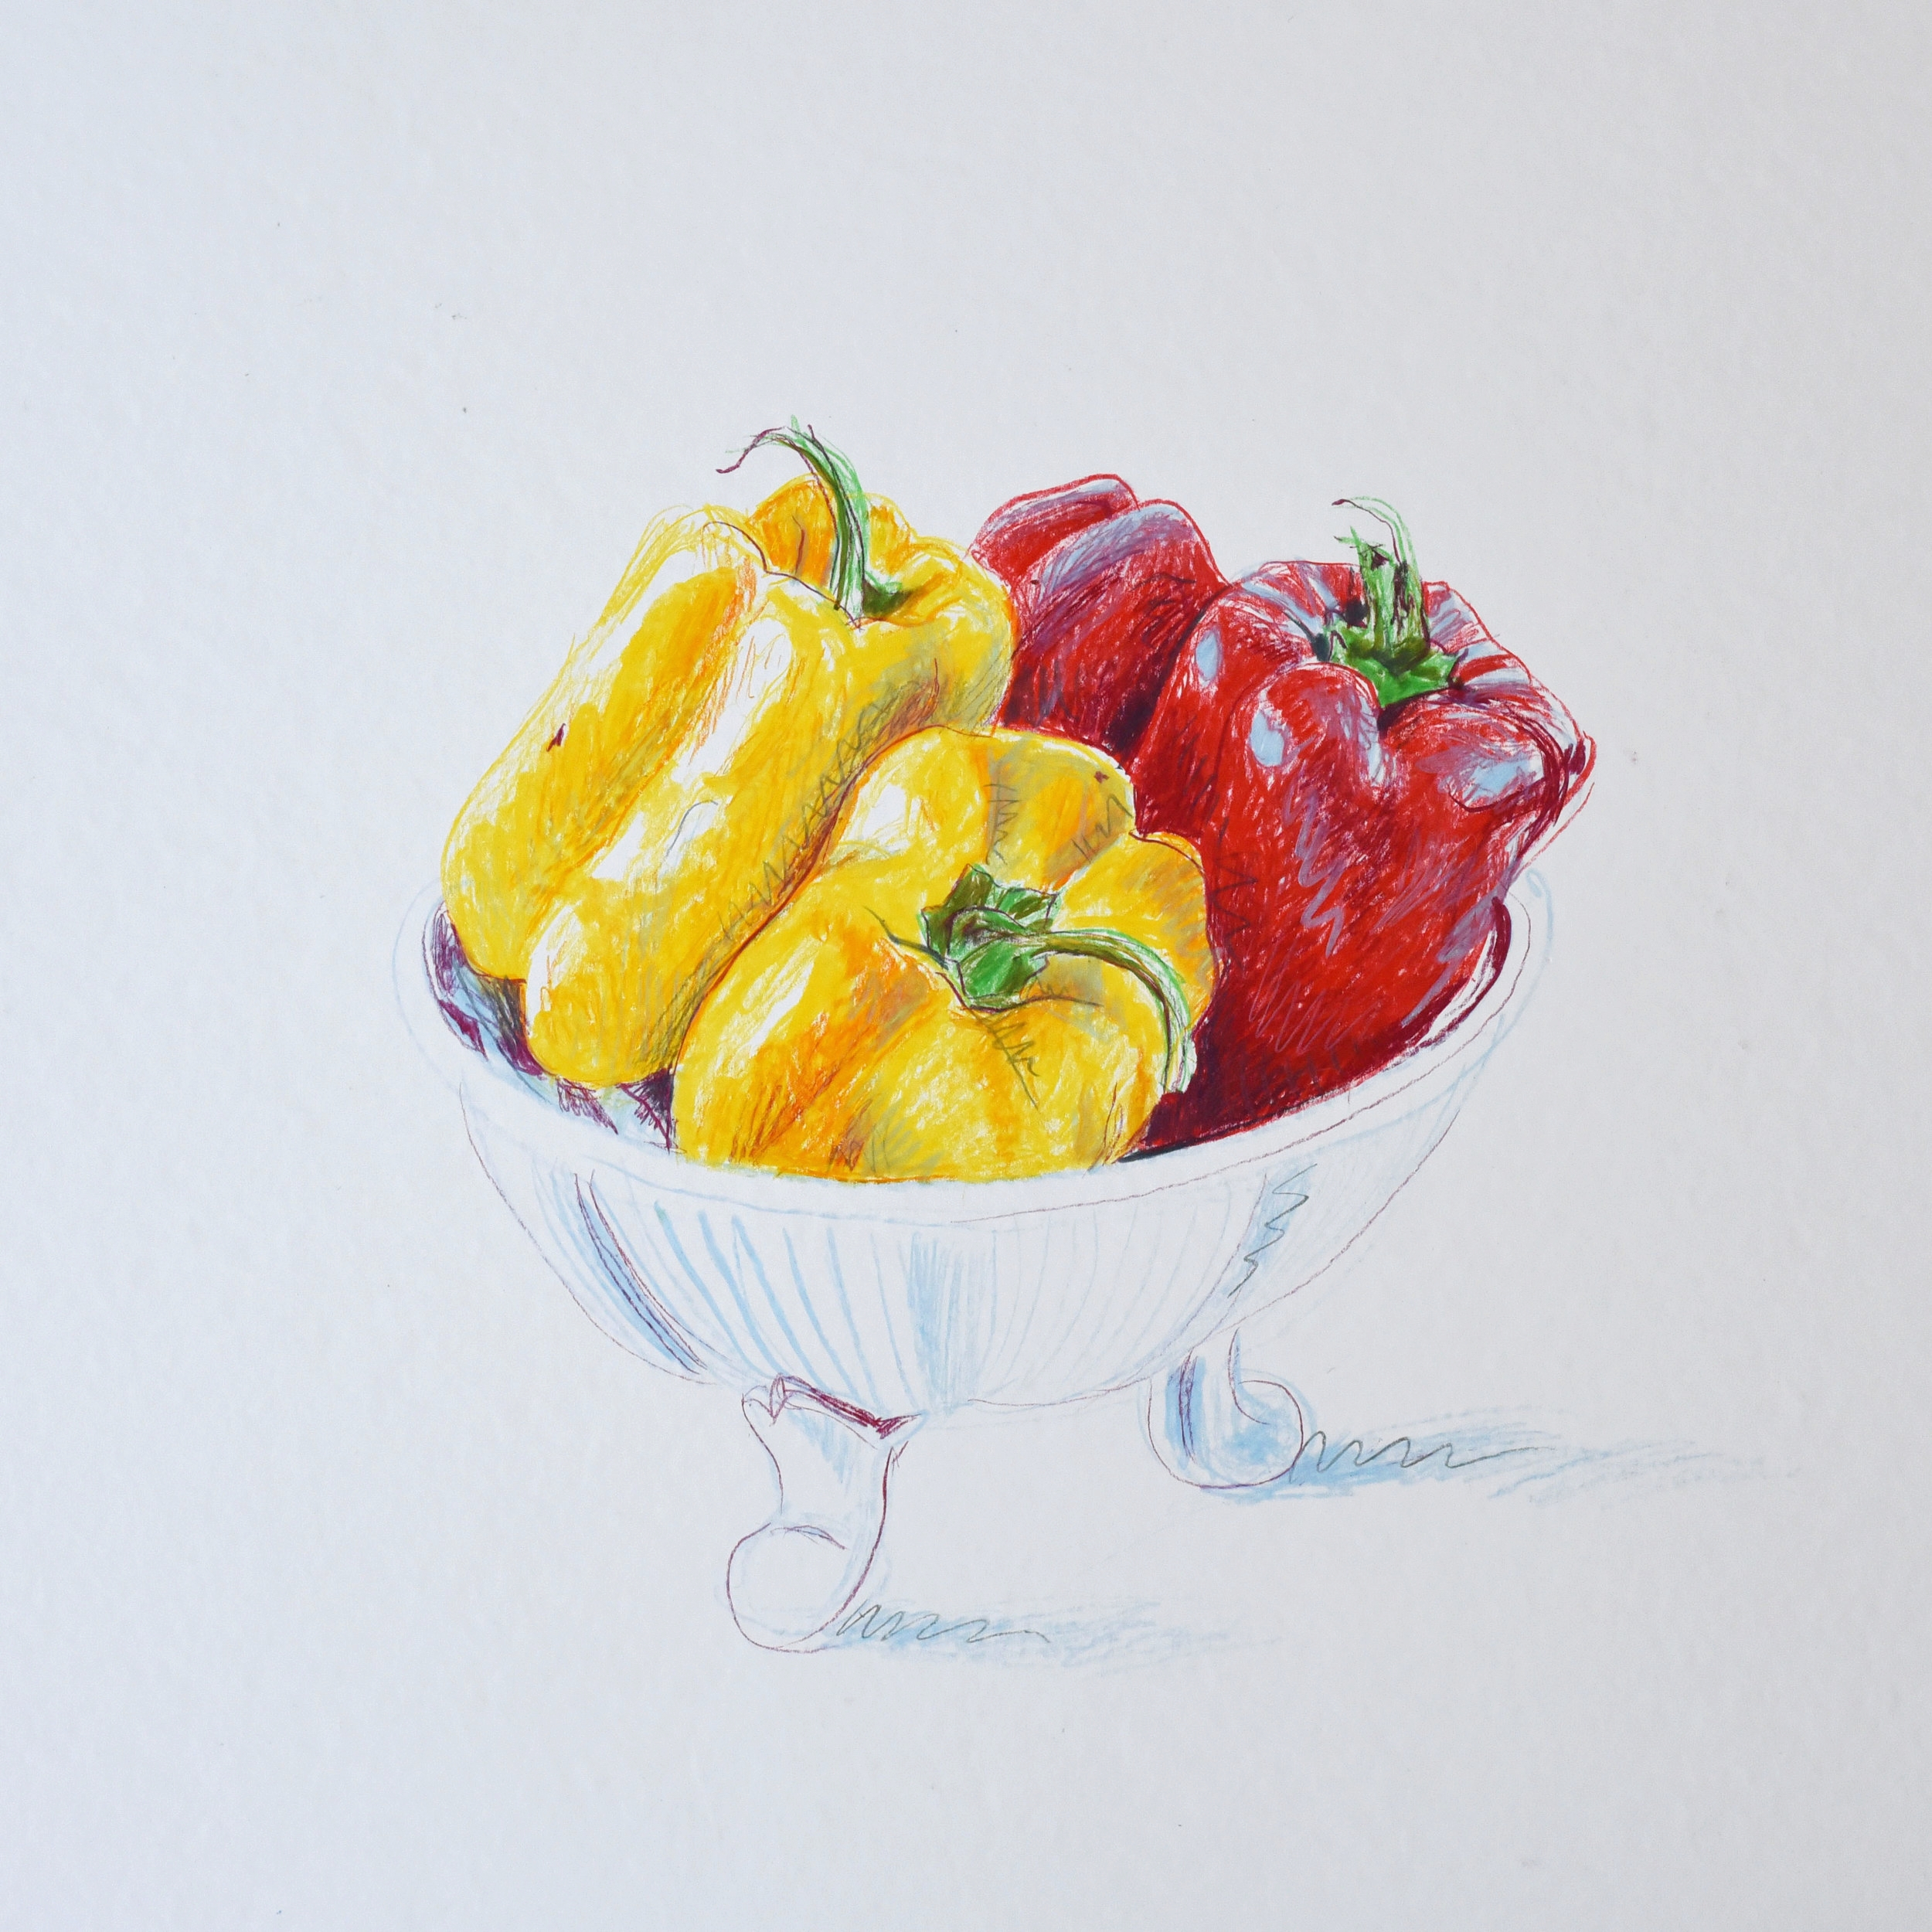 Still life of red and yellow peppers in a bowl